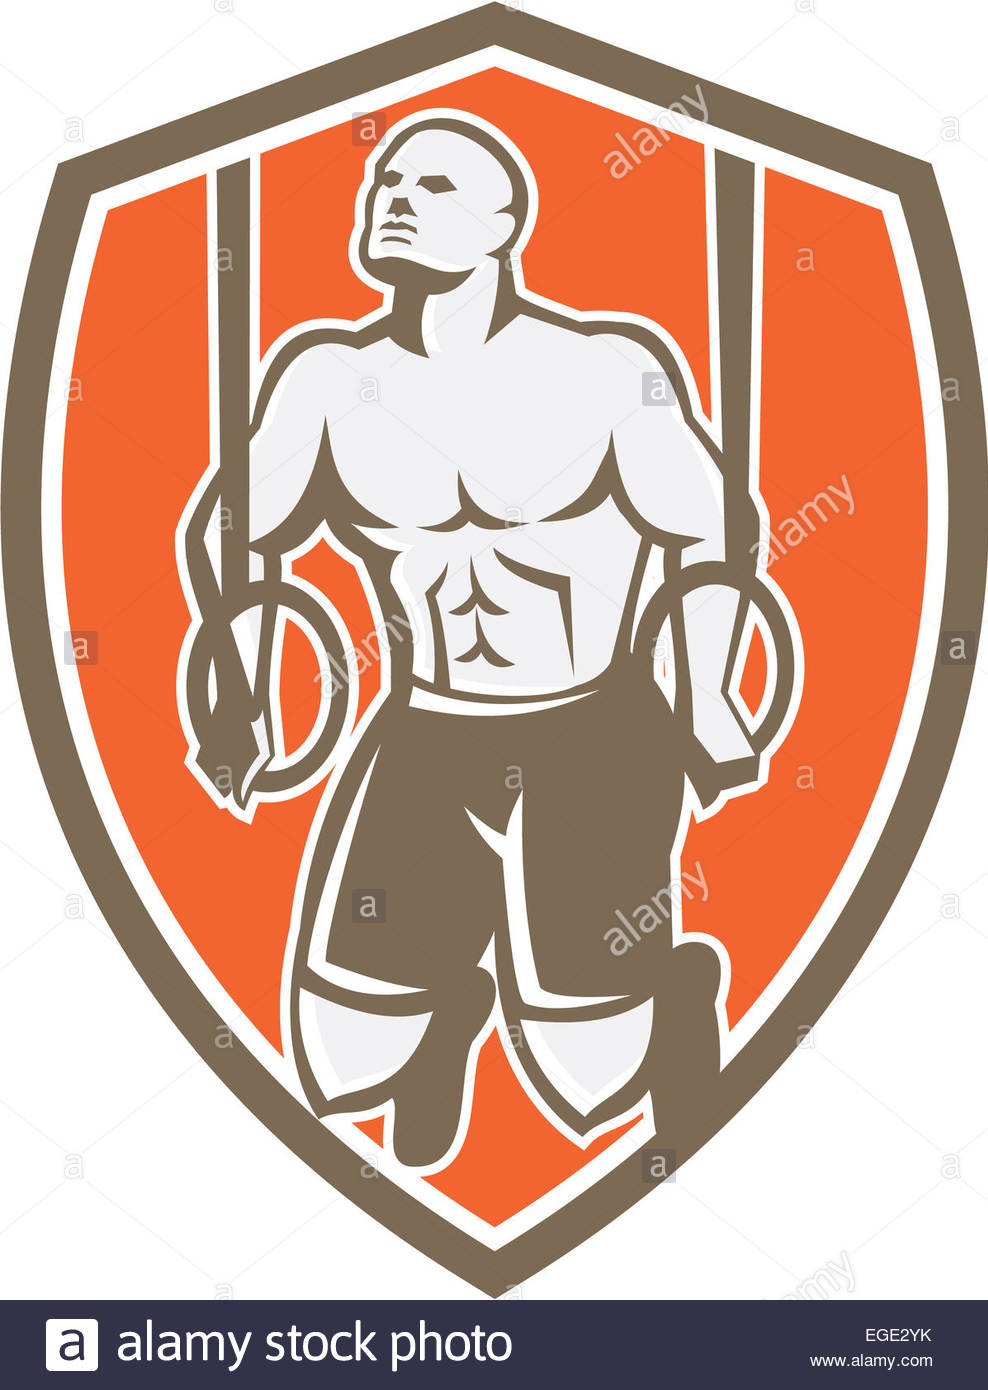 Illustration Of A Crossfit Athlete Body Weight Exercise Hanging On.